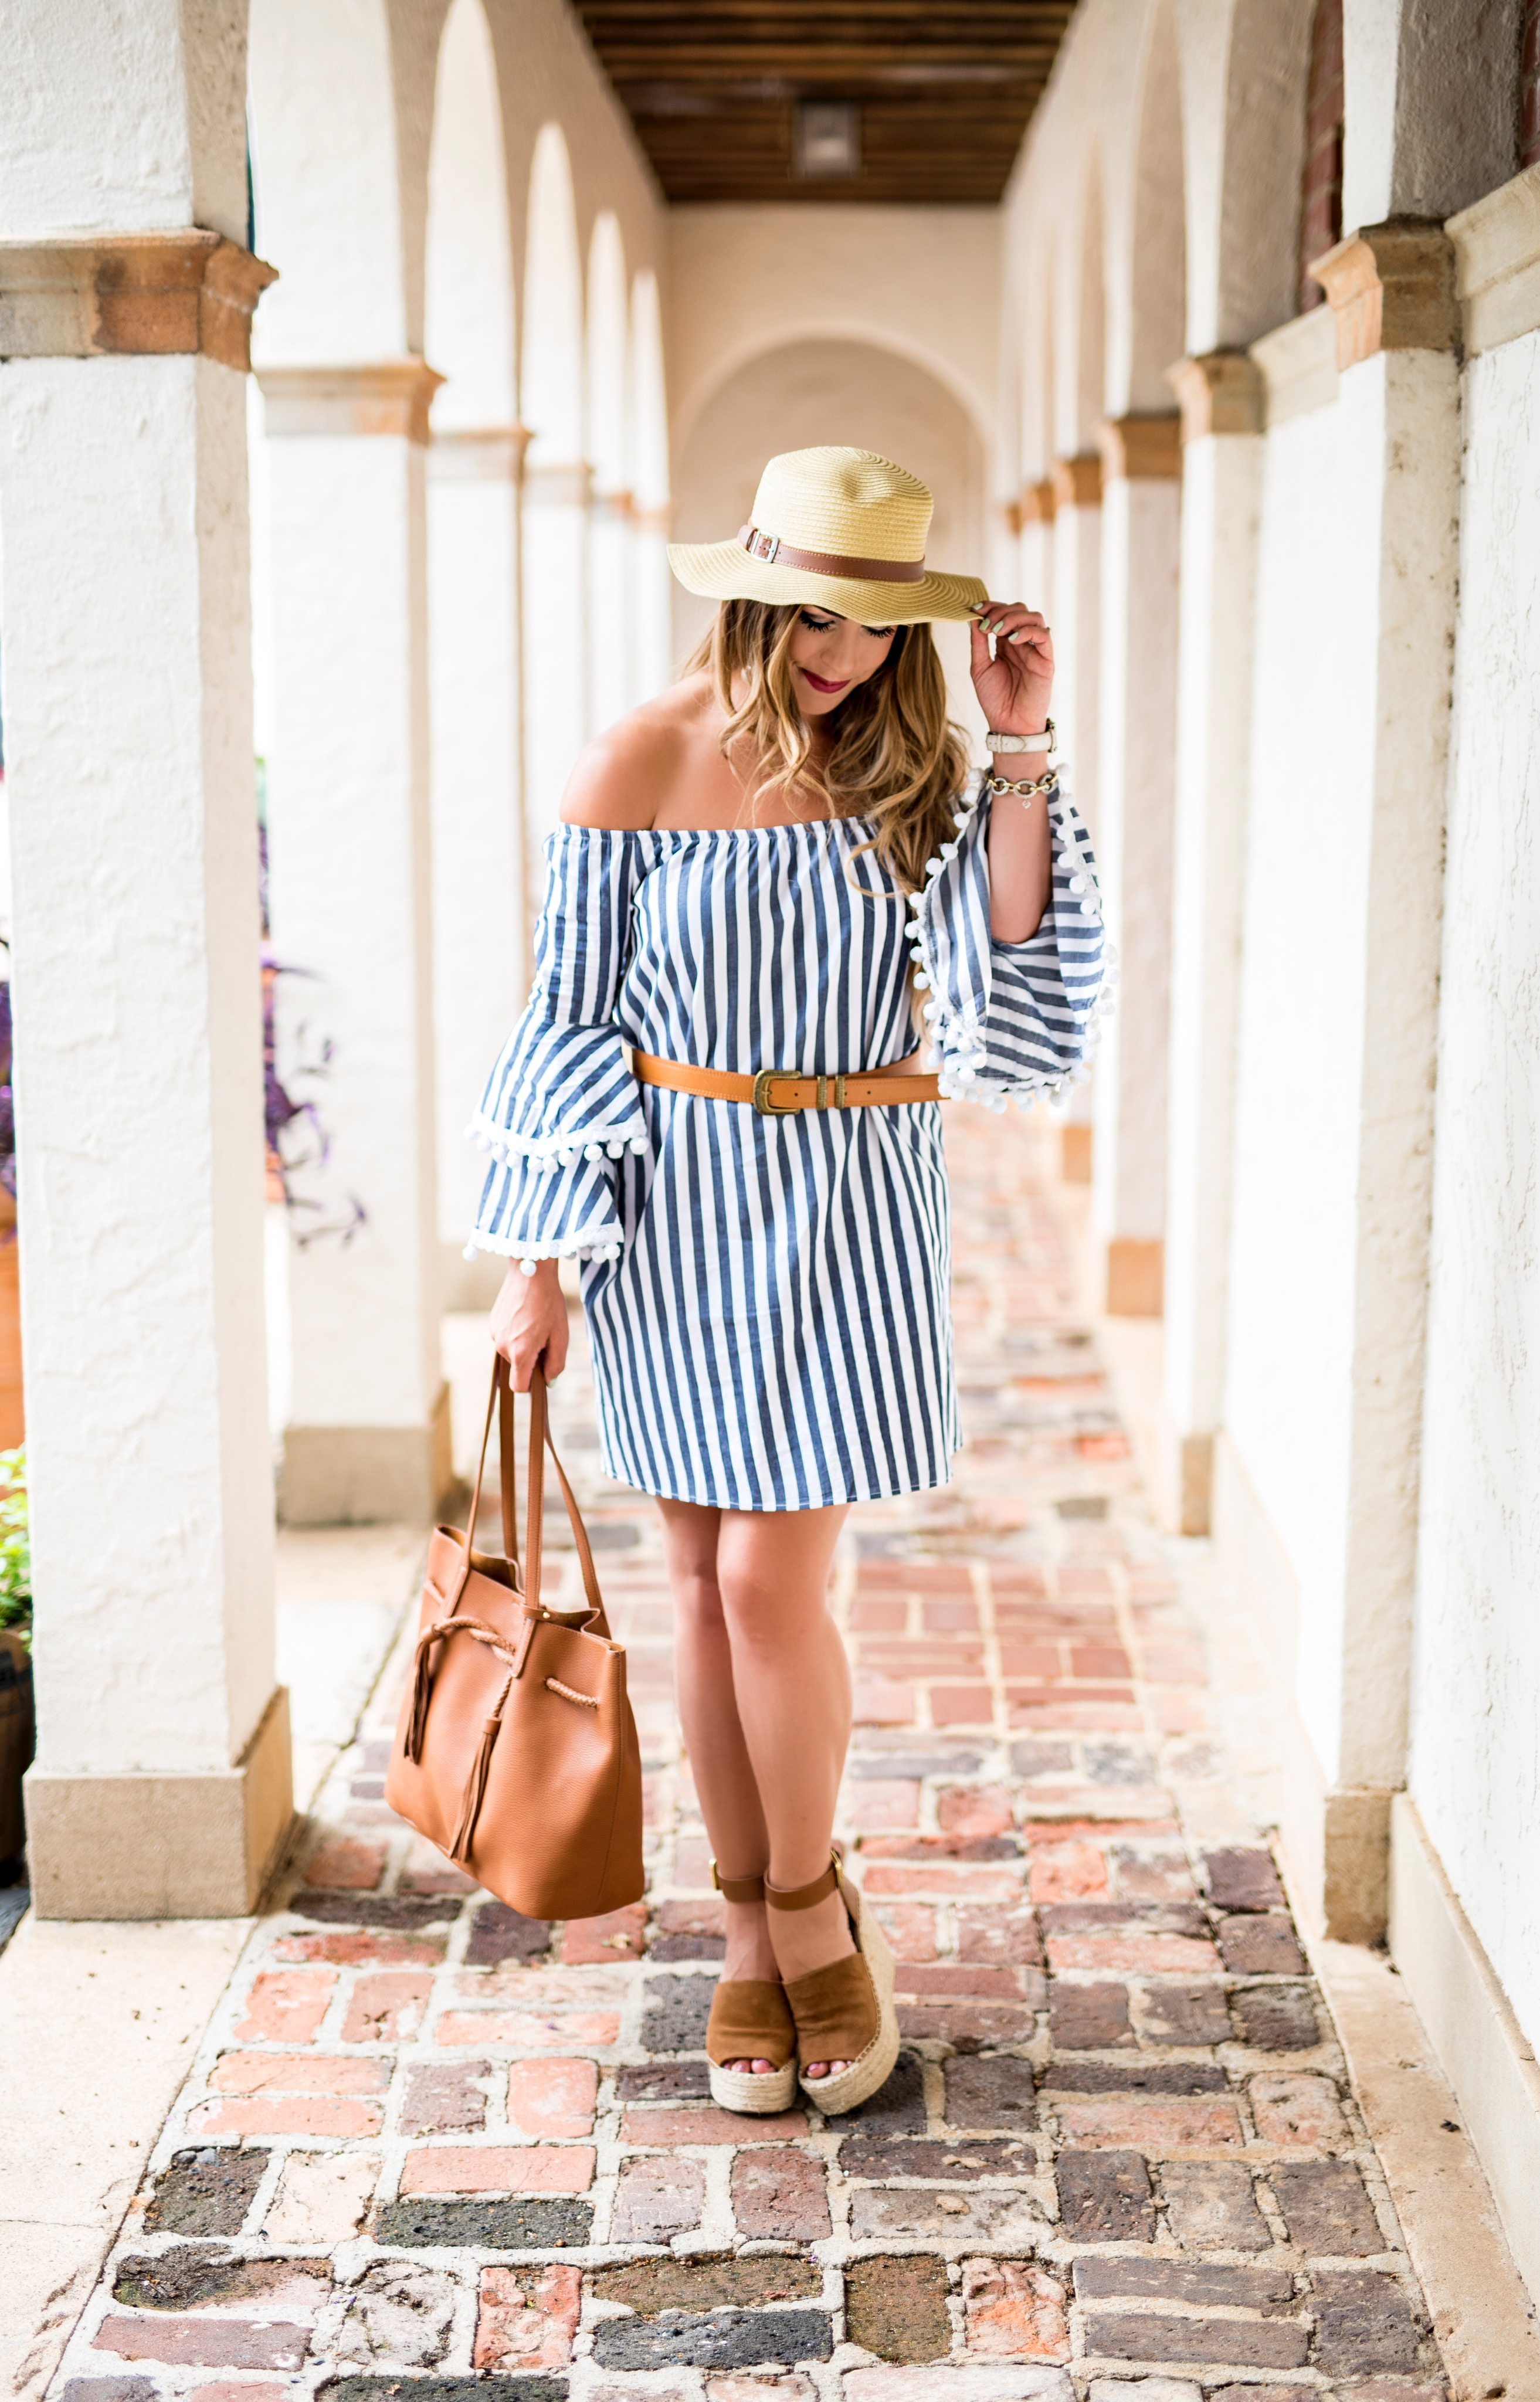 striped pom pom dress vaya by joy haan dress dresses at revolve striped dress boater hat camel accessories striped off the shoulder dress perfect travel dresses travel look travel fashion how to accessorize summer fashion summer outfit ideas summer outfit inspo